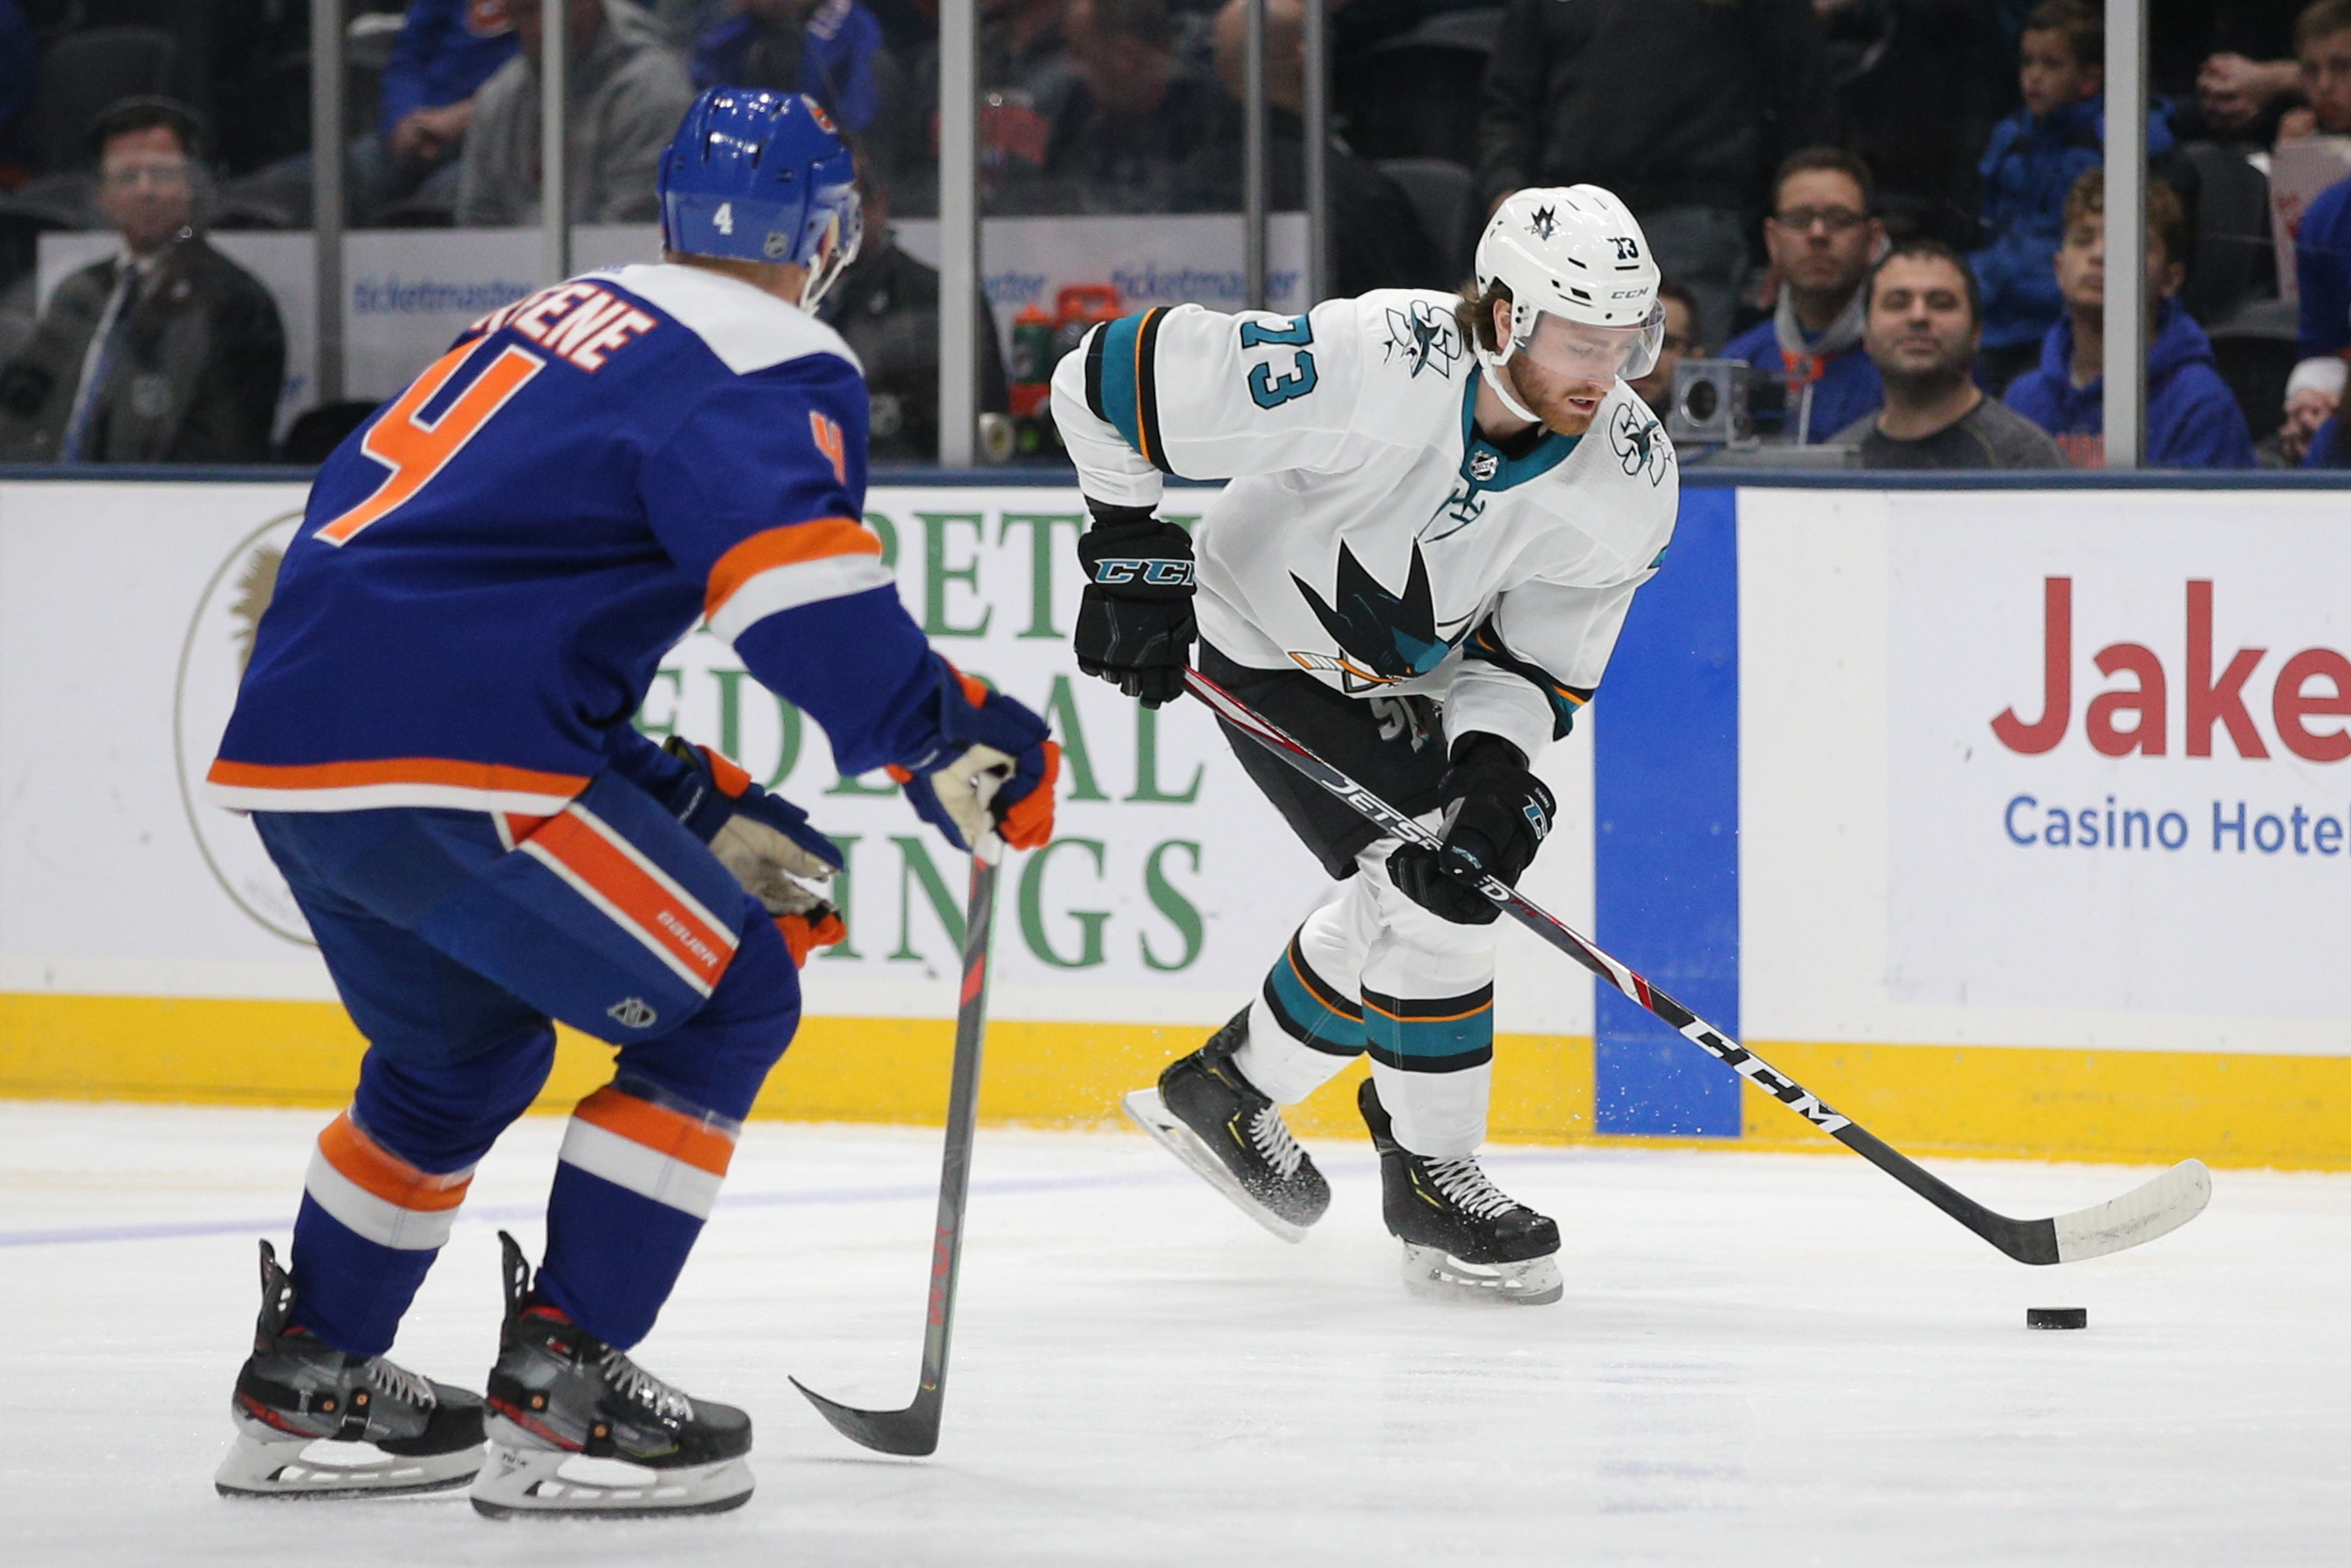 Feb 23, 2020; Uniondale, New York, USA; San Jose Sharks center Noah Gregor (73) plays the puck against New York Islanders defenseman Andy Greene (4) during the first period at Nassau Veterans Memorial Coliseum. Mandatory Credit: Brad Penner-USA TODAY Sports